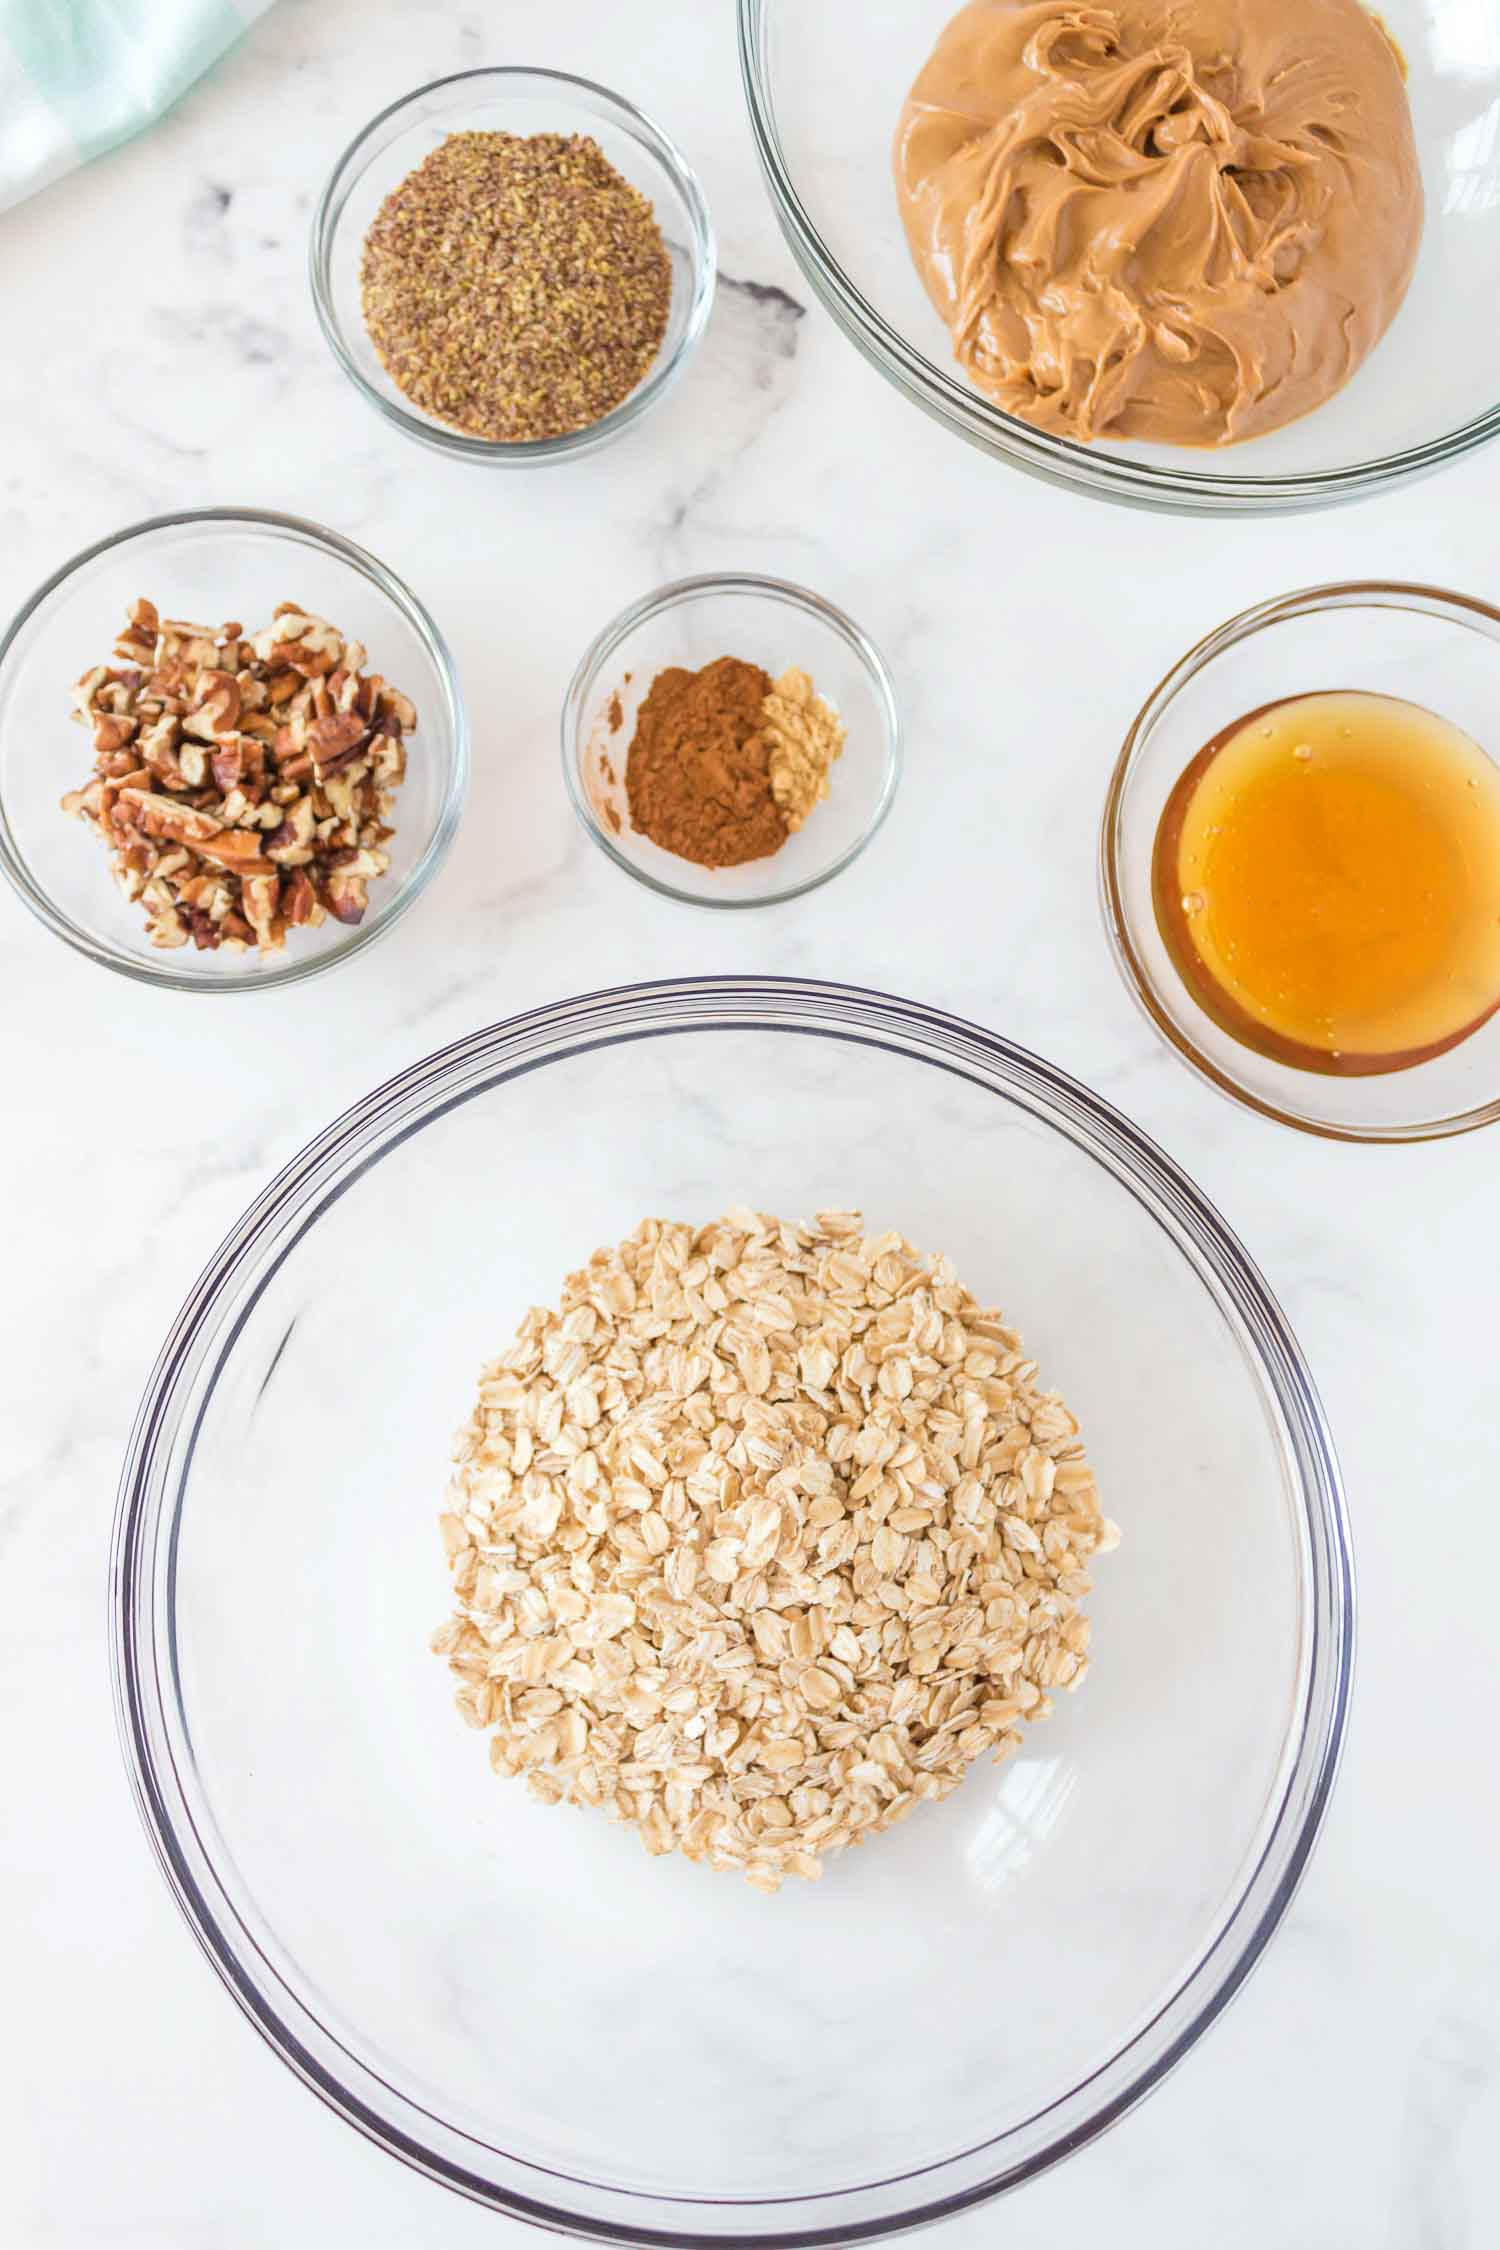 Glass bowls filled with different ingredients: peanut butter, honey, spices, pecans, flaxseed, and oatmeal.